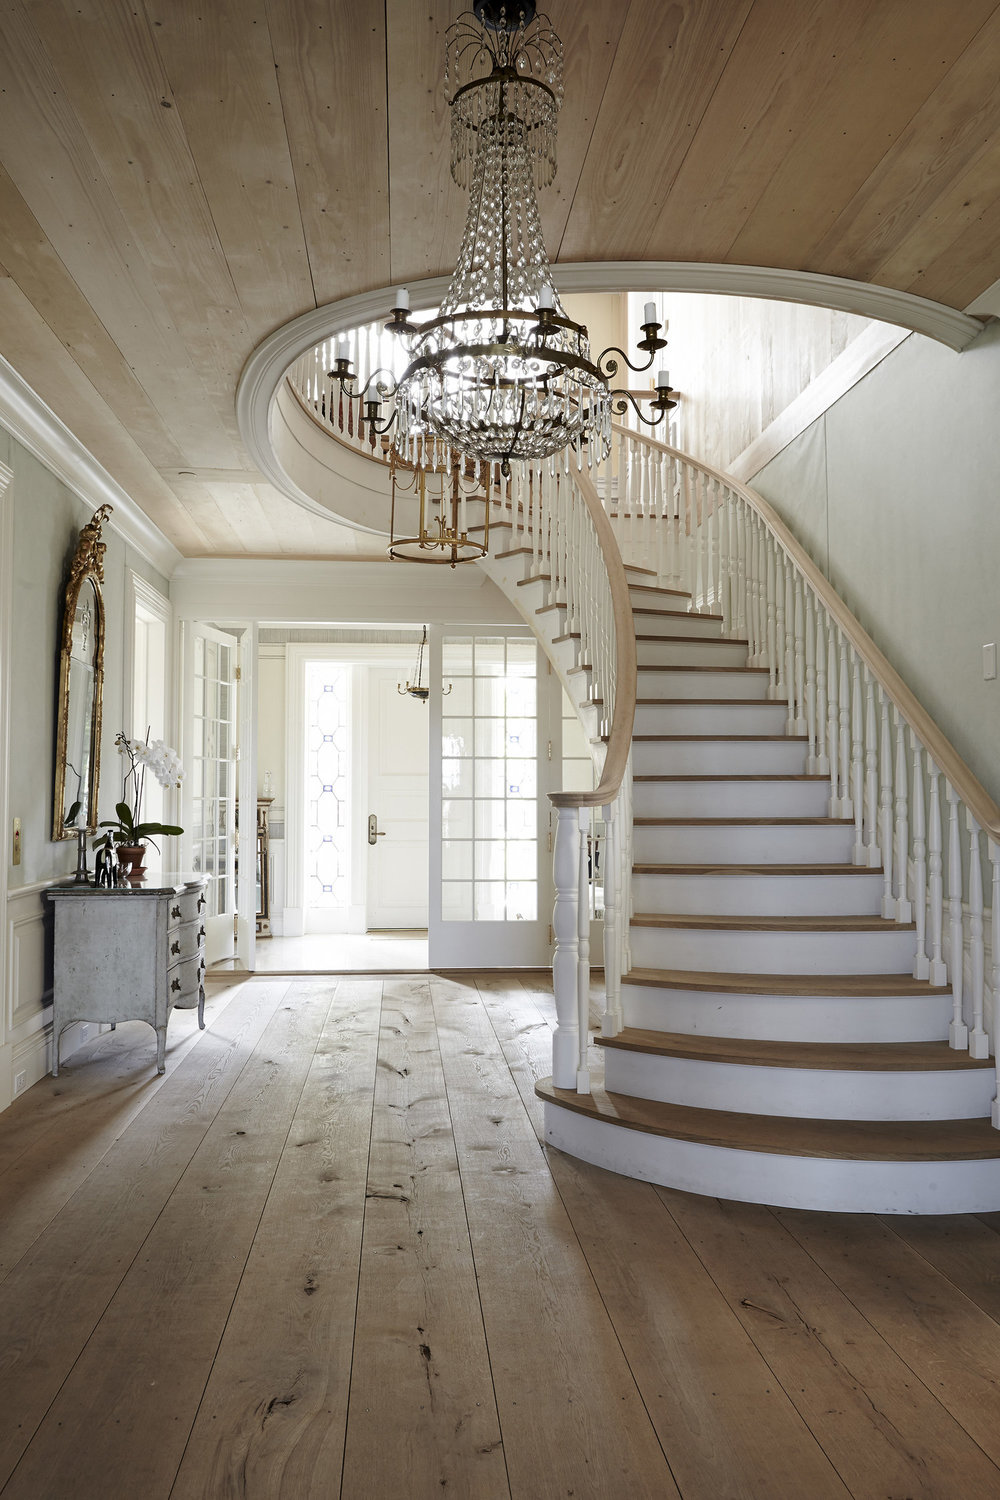 If you thought you were over the look of natural wood, you haven't come across The Hudson company. Founded in 1995,  The Hudson Company  is a custom mill specializing in wood flooring, paneling, and beams. They also offer hands-on professional services for design and building projects, with a team of carpenters, installers, finishers, millworkers, and tooling specialists. Scroll through for some of our favourite projects ...